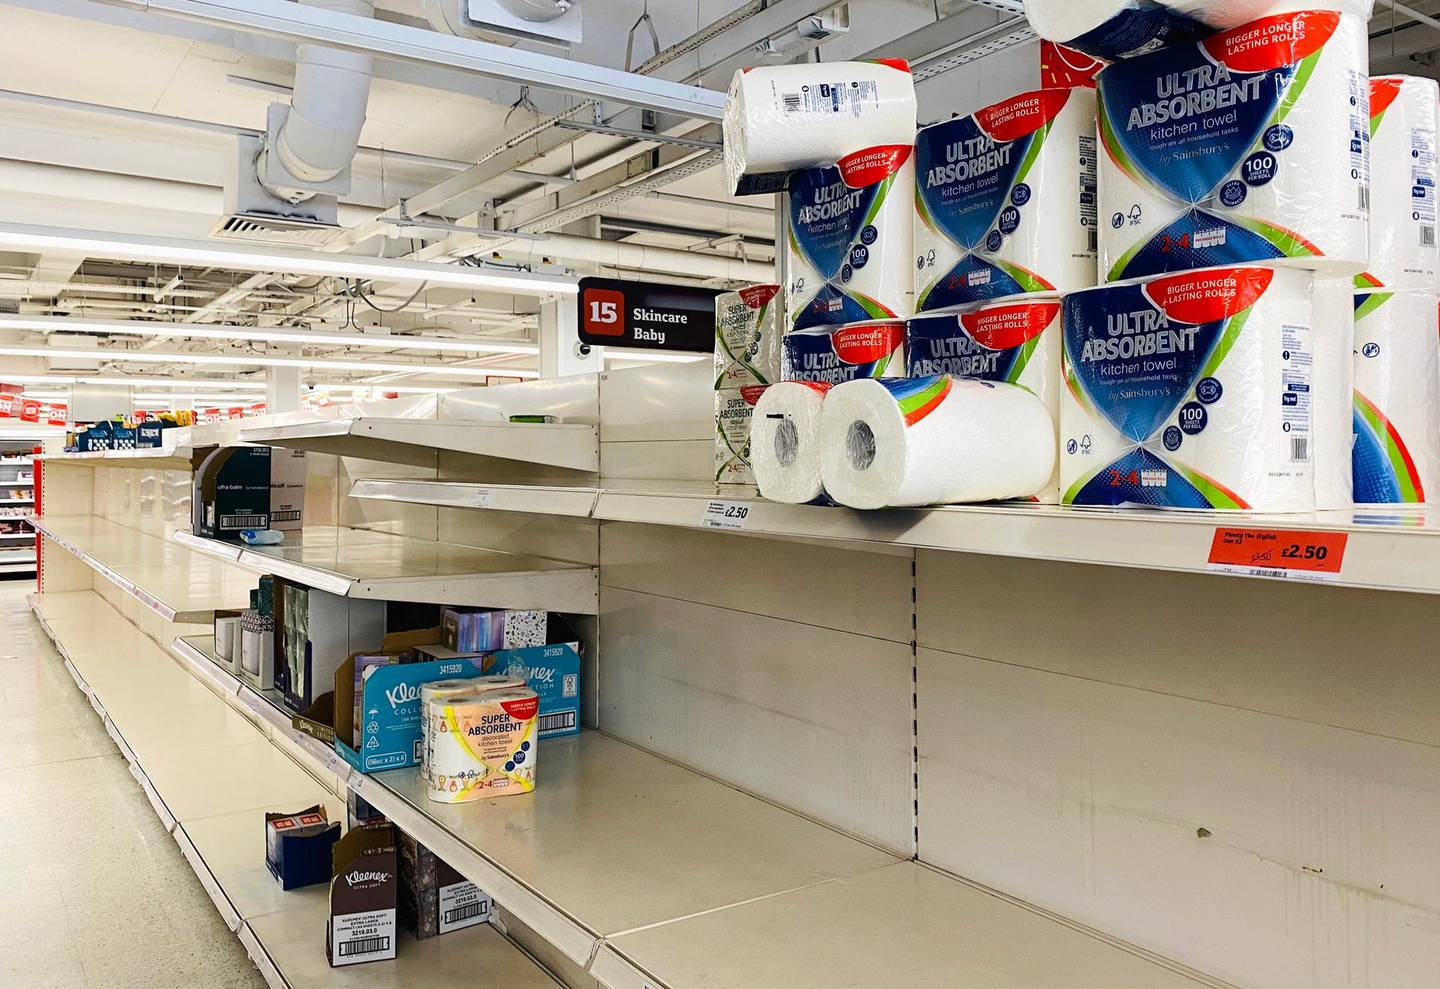 epa08274825 A general view of an almost empty aisle in a Sainsbury's supermarket in Central London, Britain, 06 March 2020. Reports suggest UK retailers are suffering supply disruptions because of the Covid-19 conoravirus.  EPA/WILL OLIVER